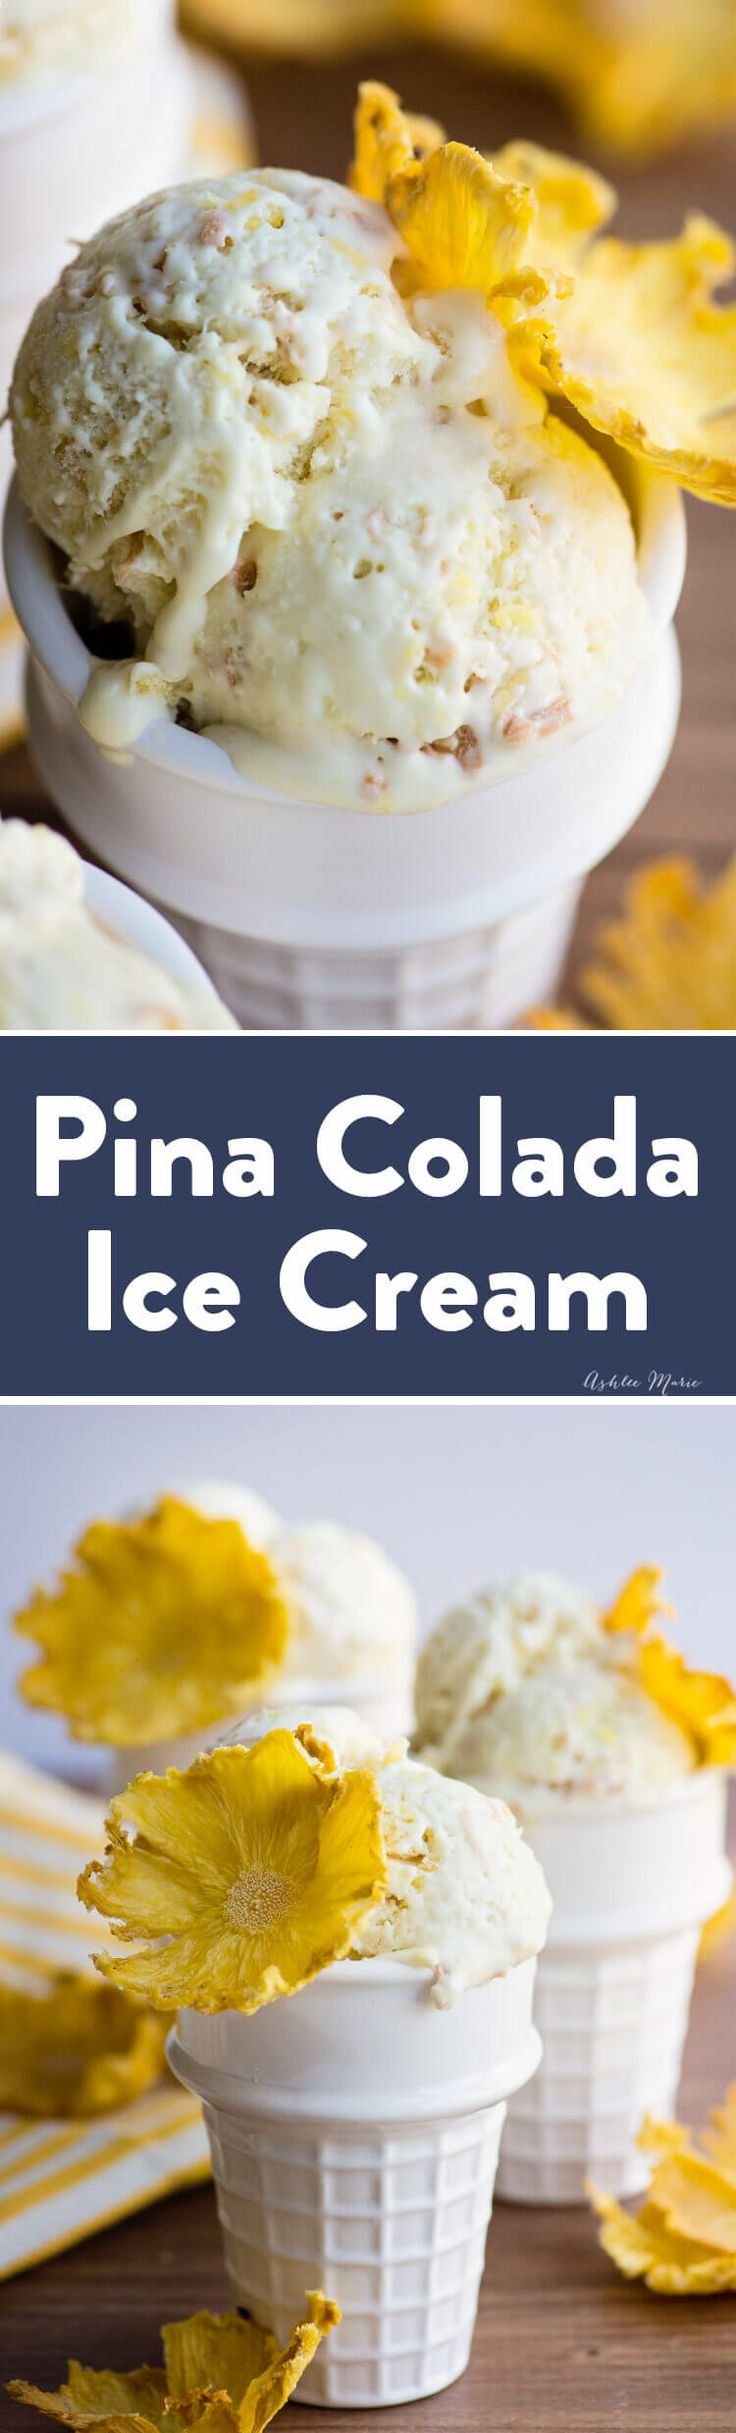 this pina colada ice cream recipe is easy to make and delicious - a coconut ice cream with chunks of pineapple and toasted coconut - with recipe video